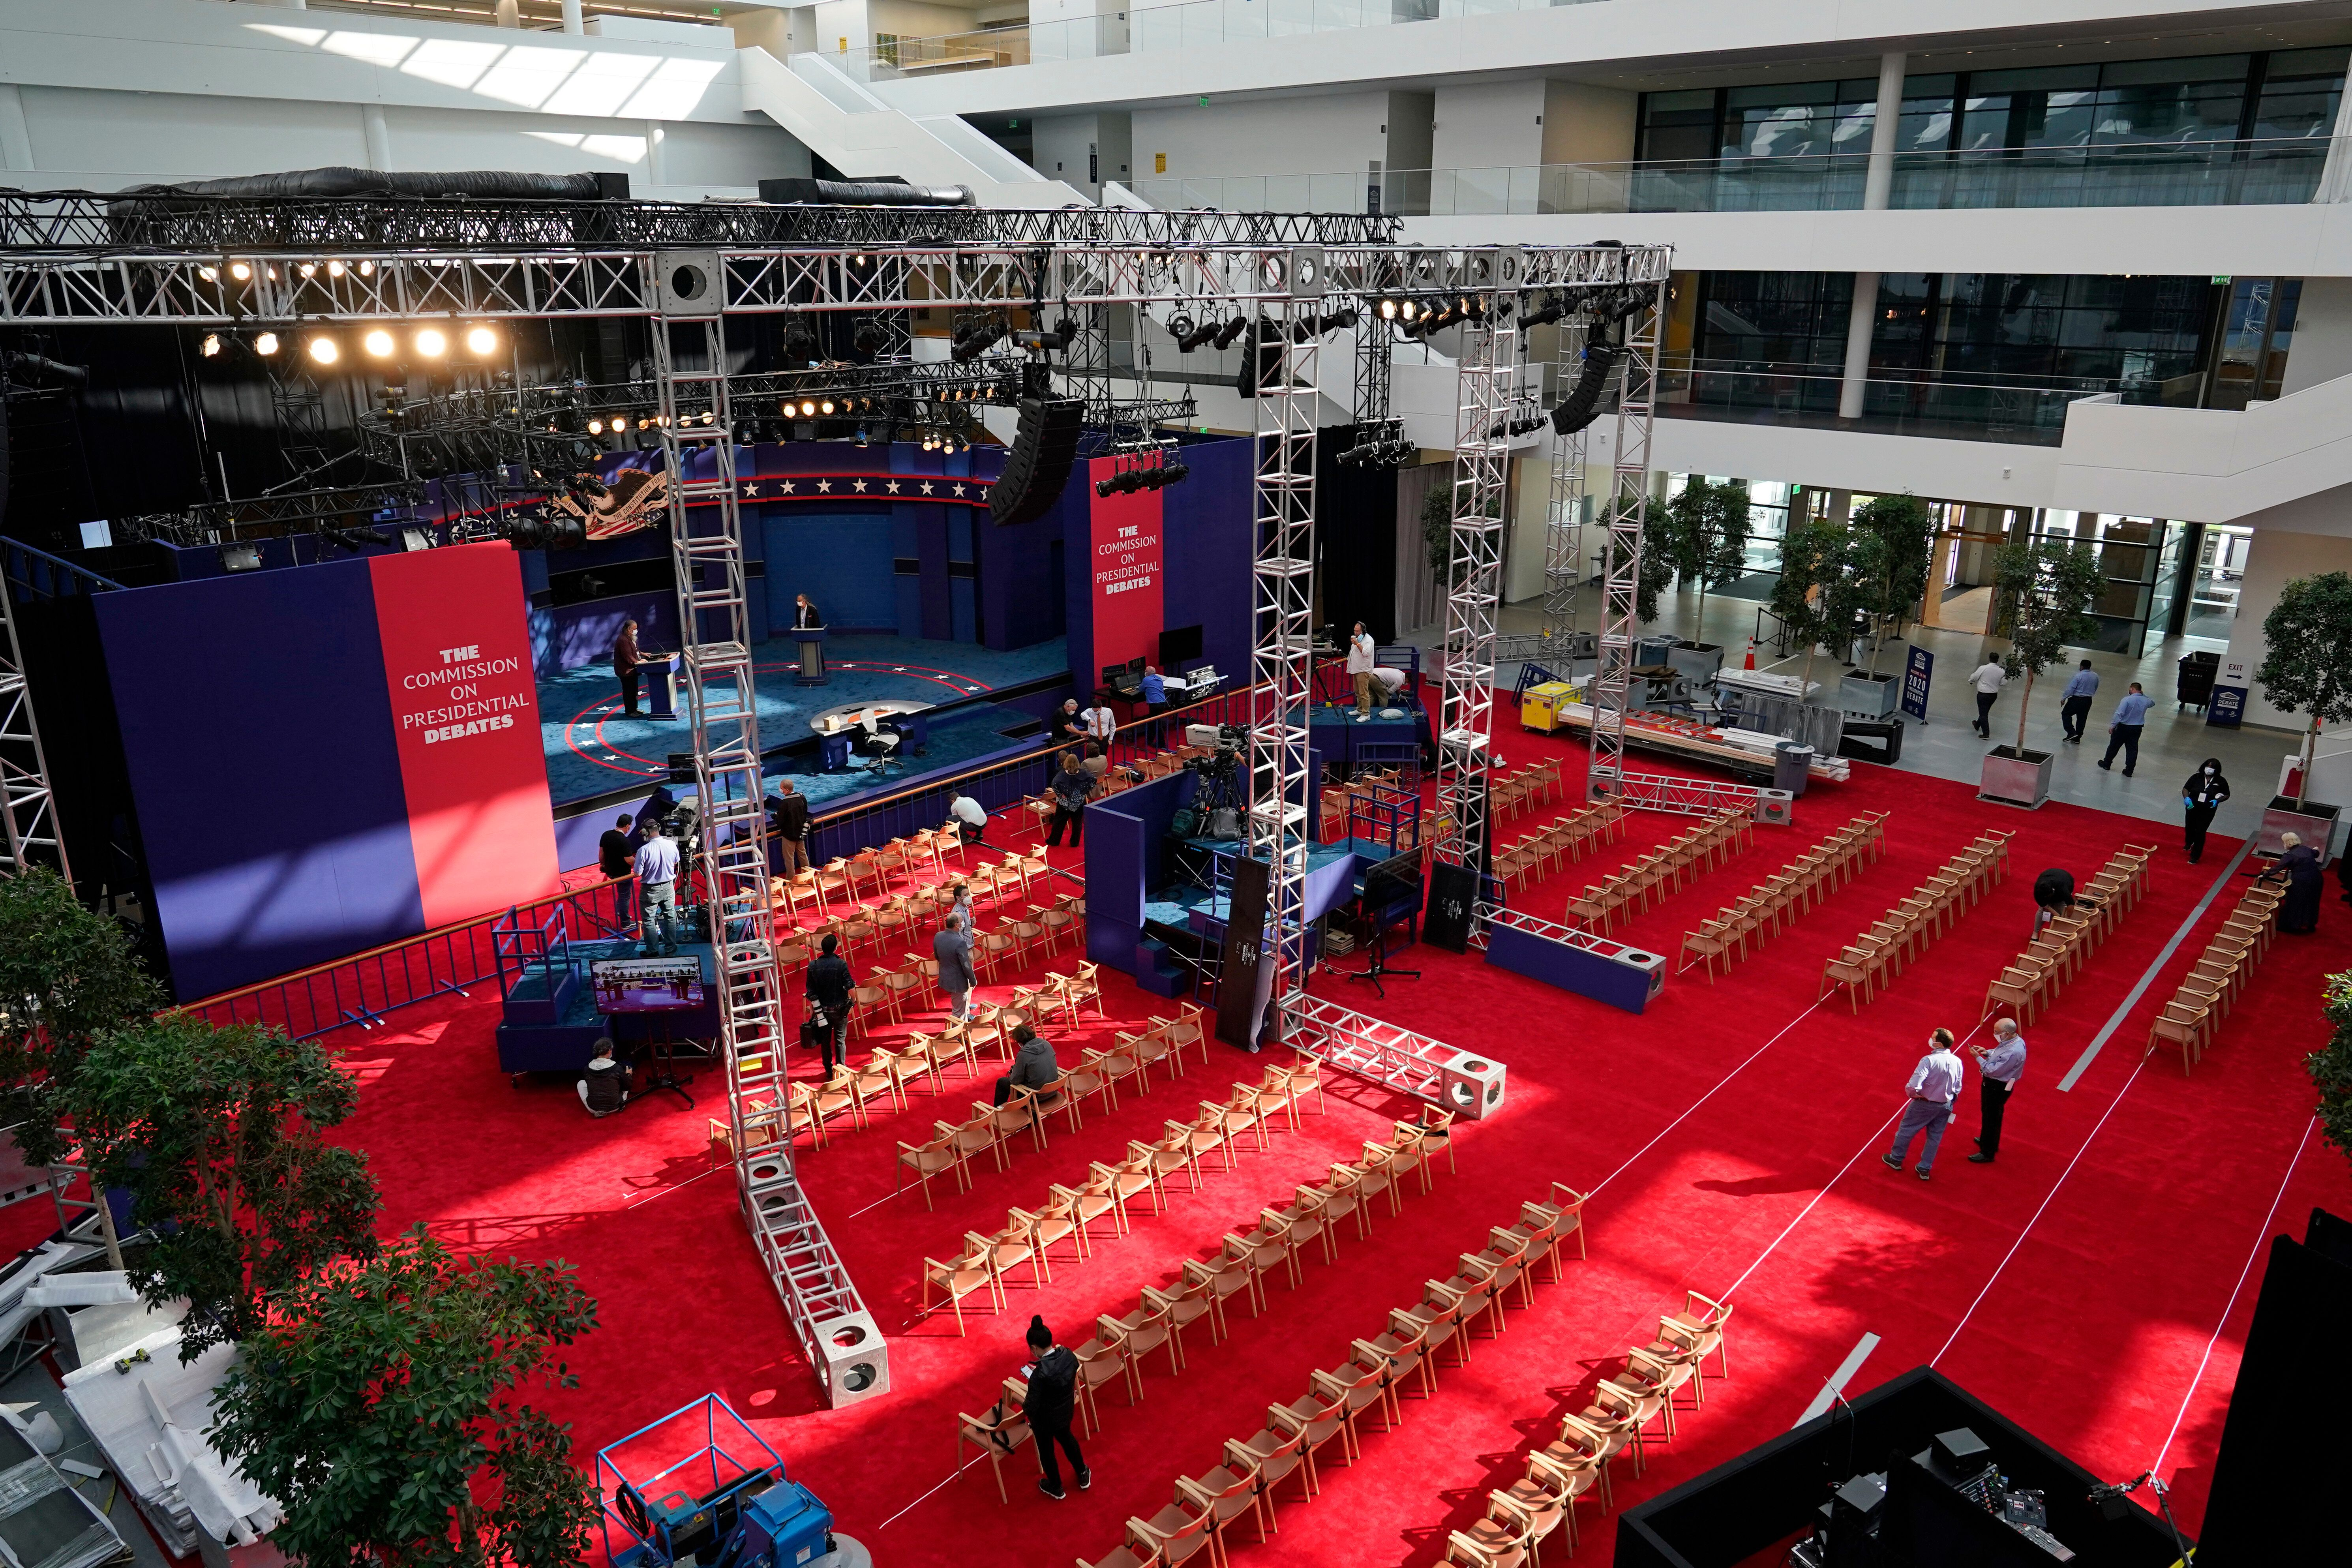 Preparations take place in Cleveland on Sept. 28, 2020, for the first presidential debate between Donald Trump and Joe Biden.